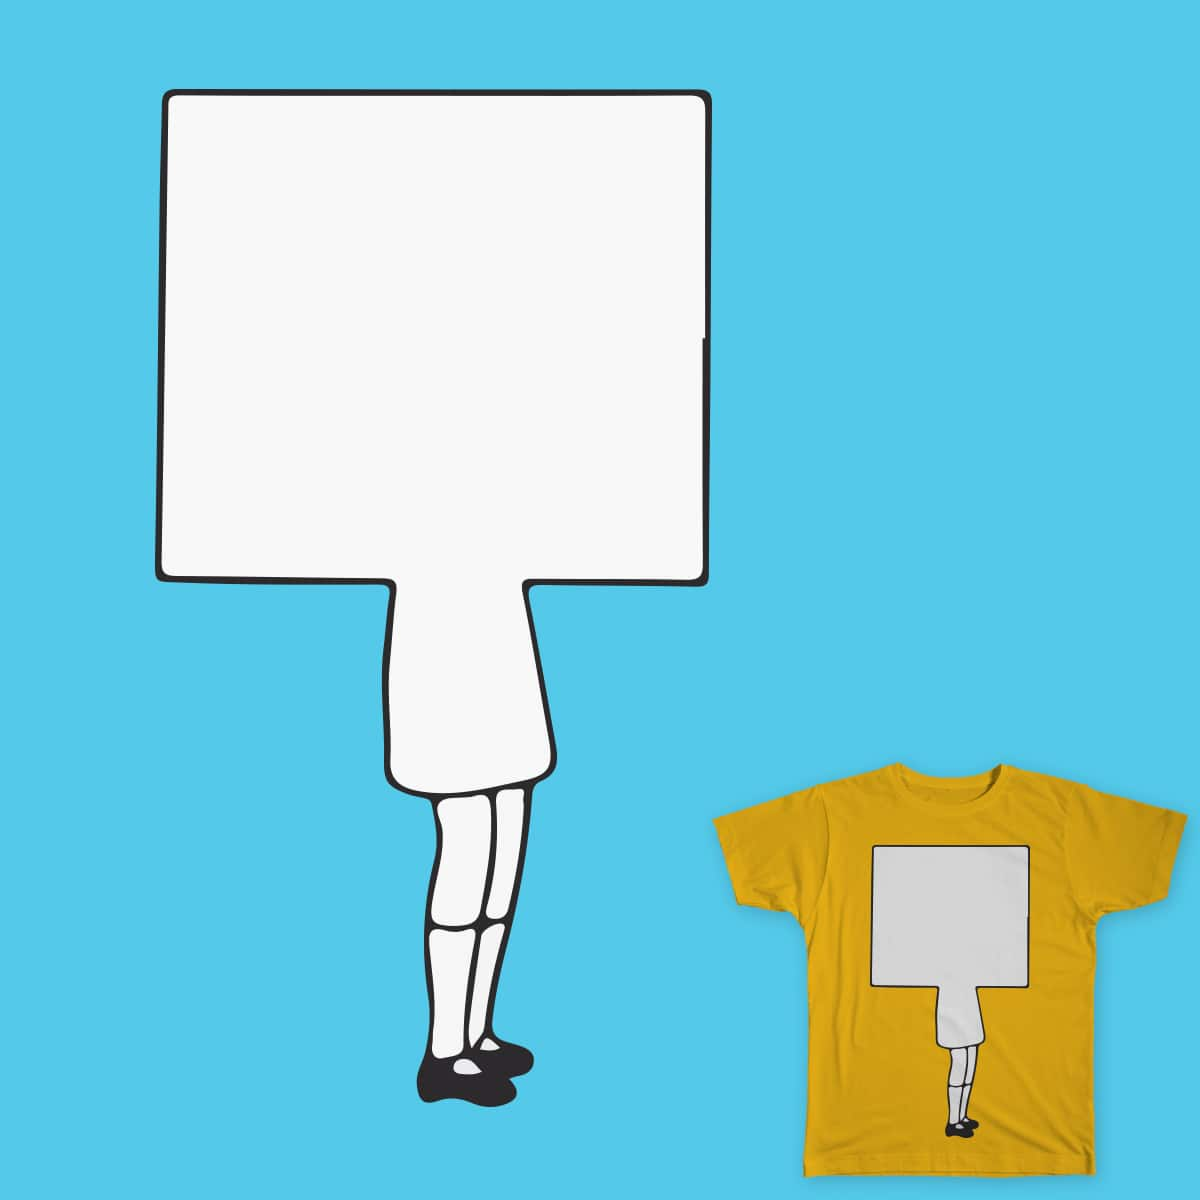 Fill_me by EvaBlue11 on Threadless